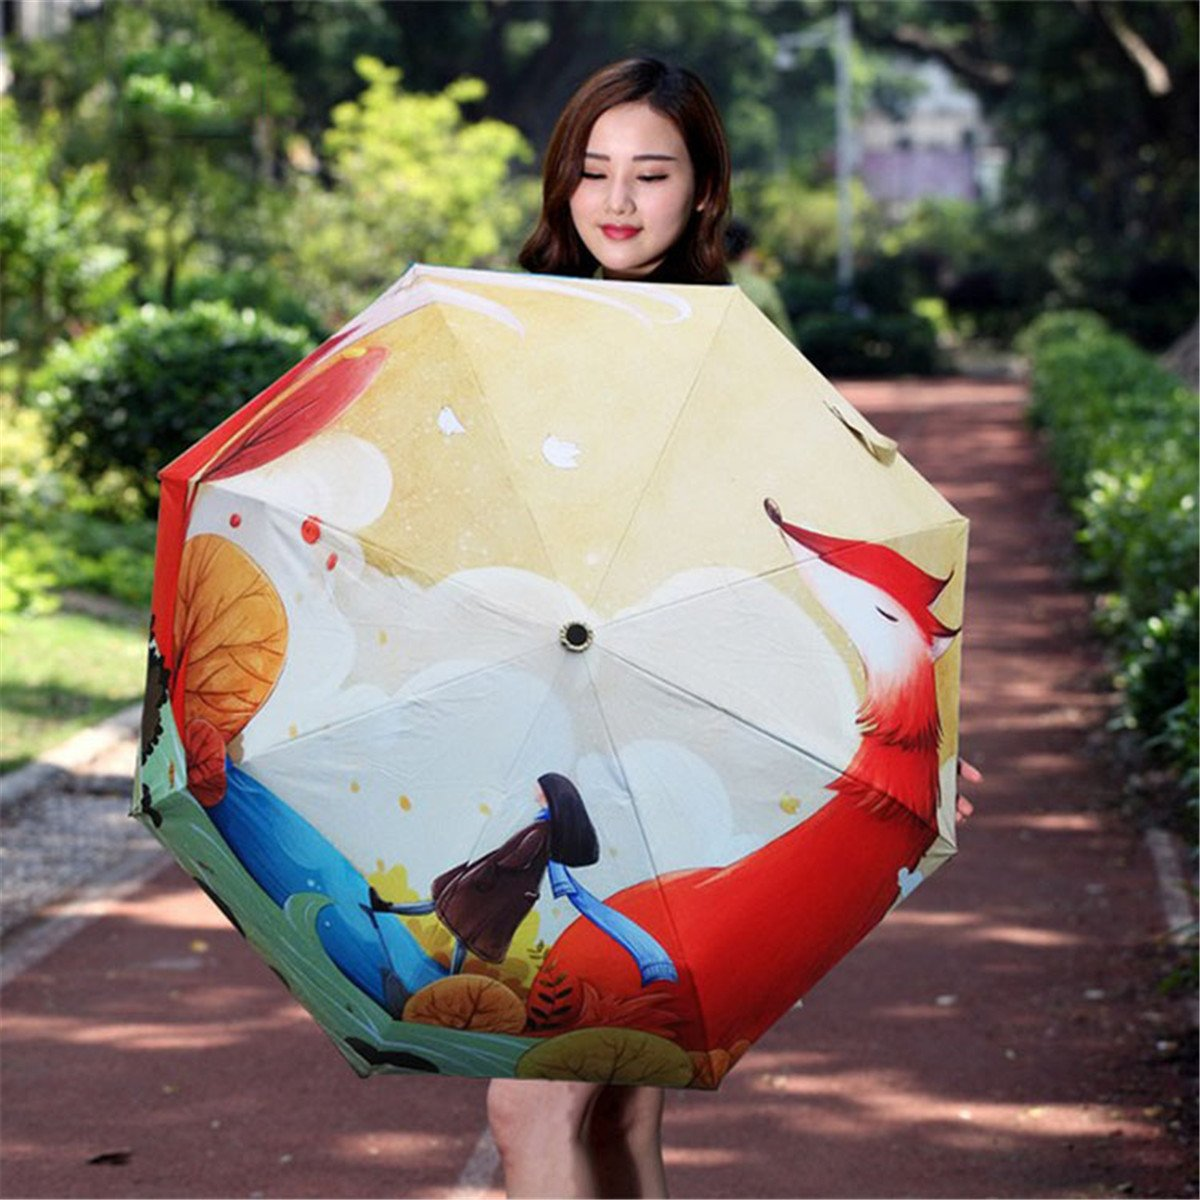 Ruick Artistic Umbrella Light-weighted Folding Umbrella with Anti-UV and Windproof Funtions Suitable for Both Sunny and Raining Days- Available In 5 Patterns (Fox) by Ruick (Image #7)